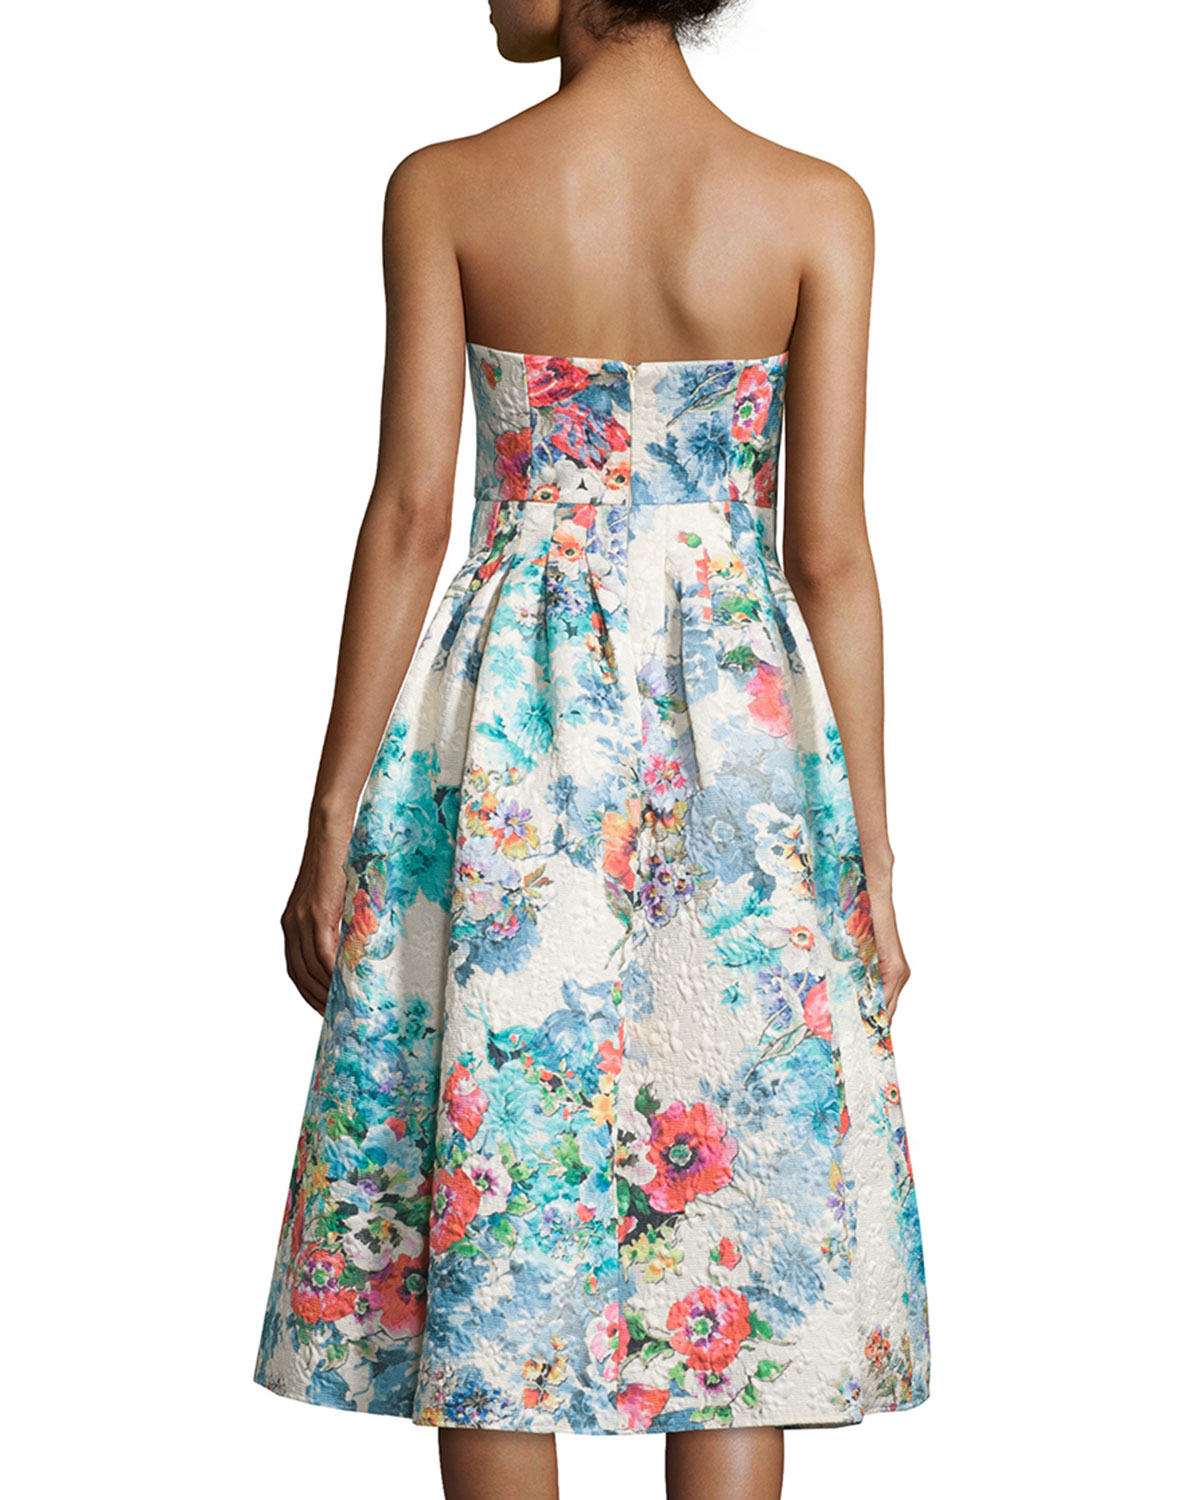 Cynthia rowley Strapless Floral-print Tea Dress in Natural | Lyst